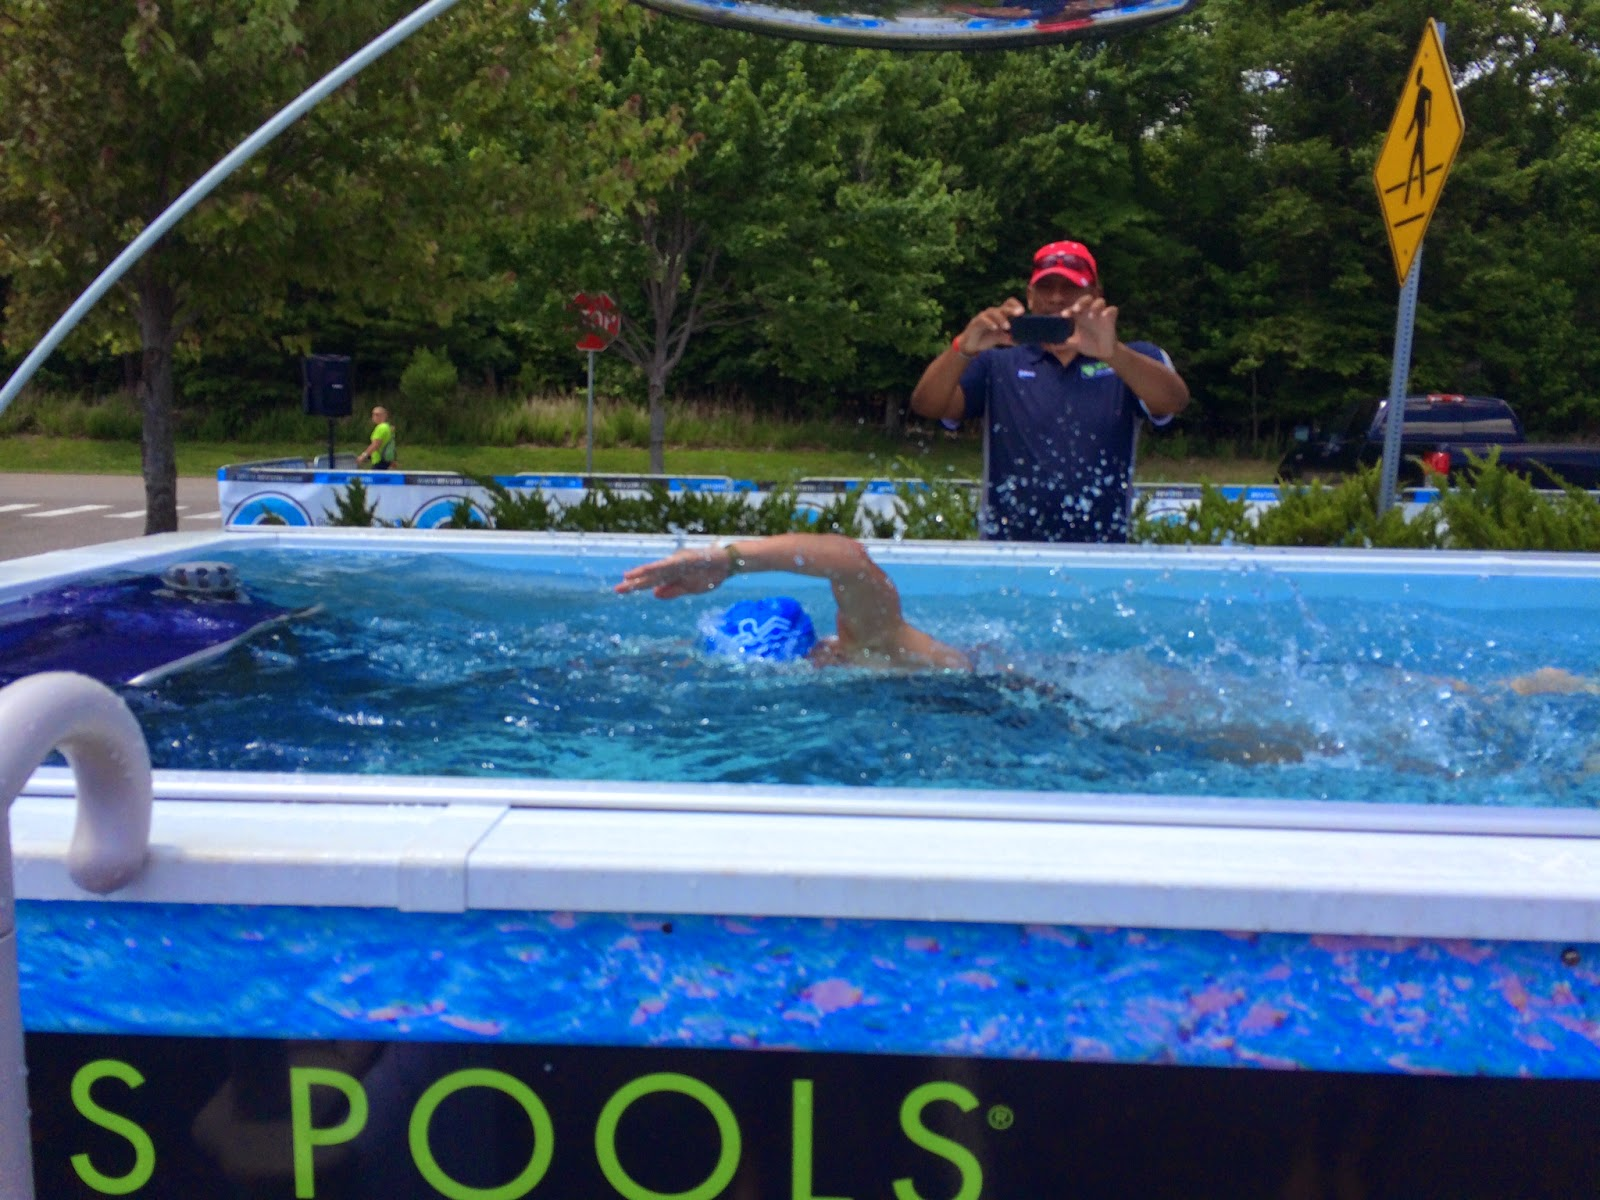 An Endless Pool swimmer gets photographed from both sides at the REV3 Triathlon in Williamsburg, VA.